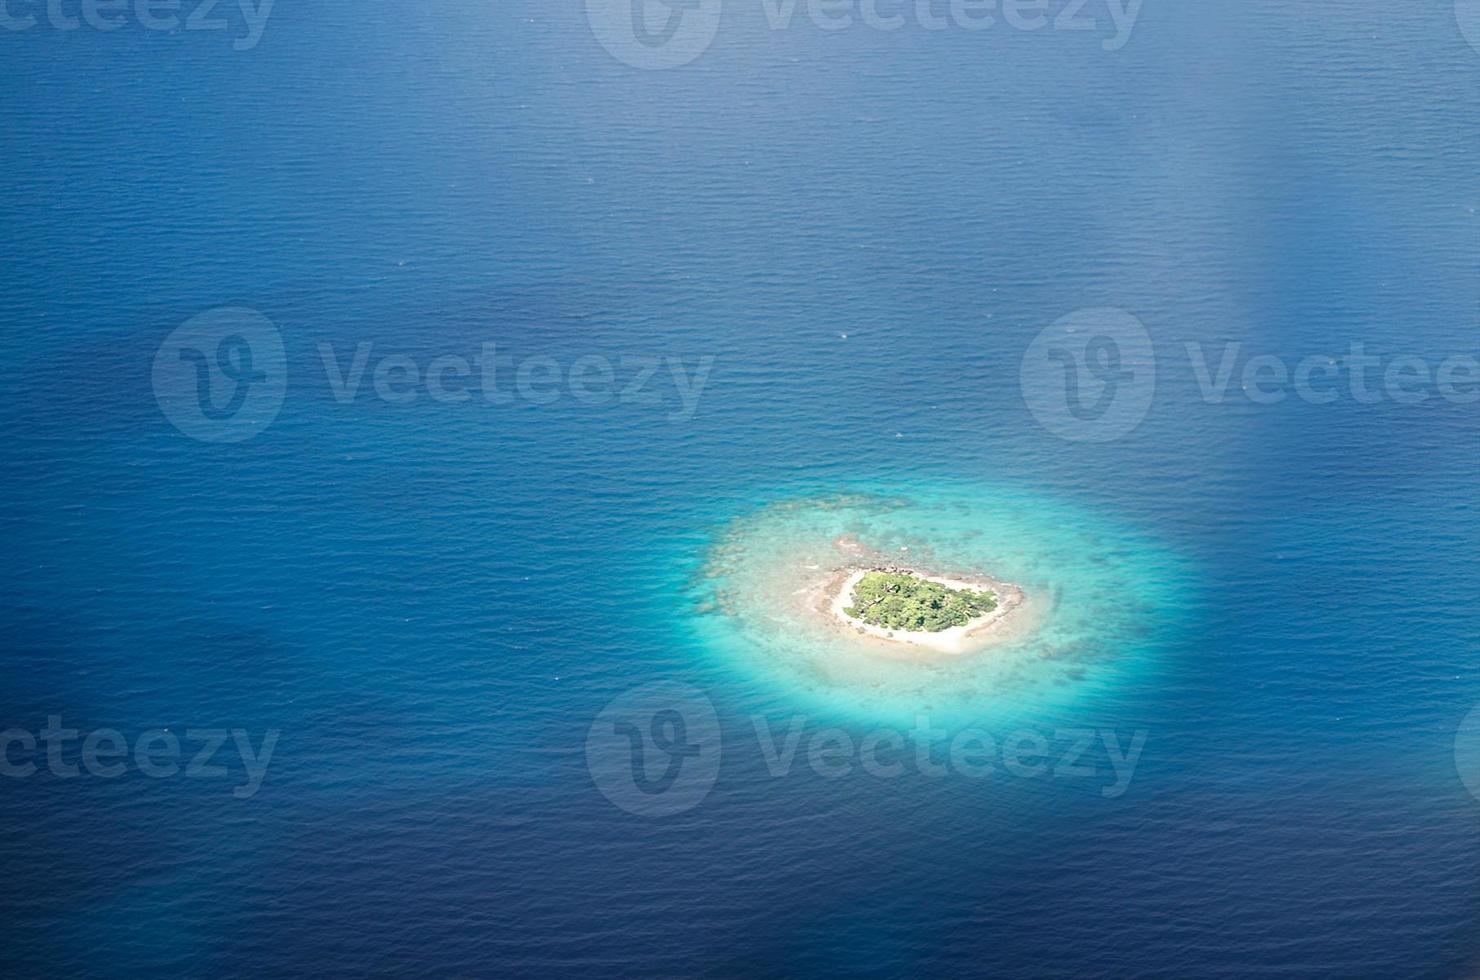 Uninhabited island in the Pacific photo